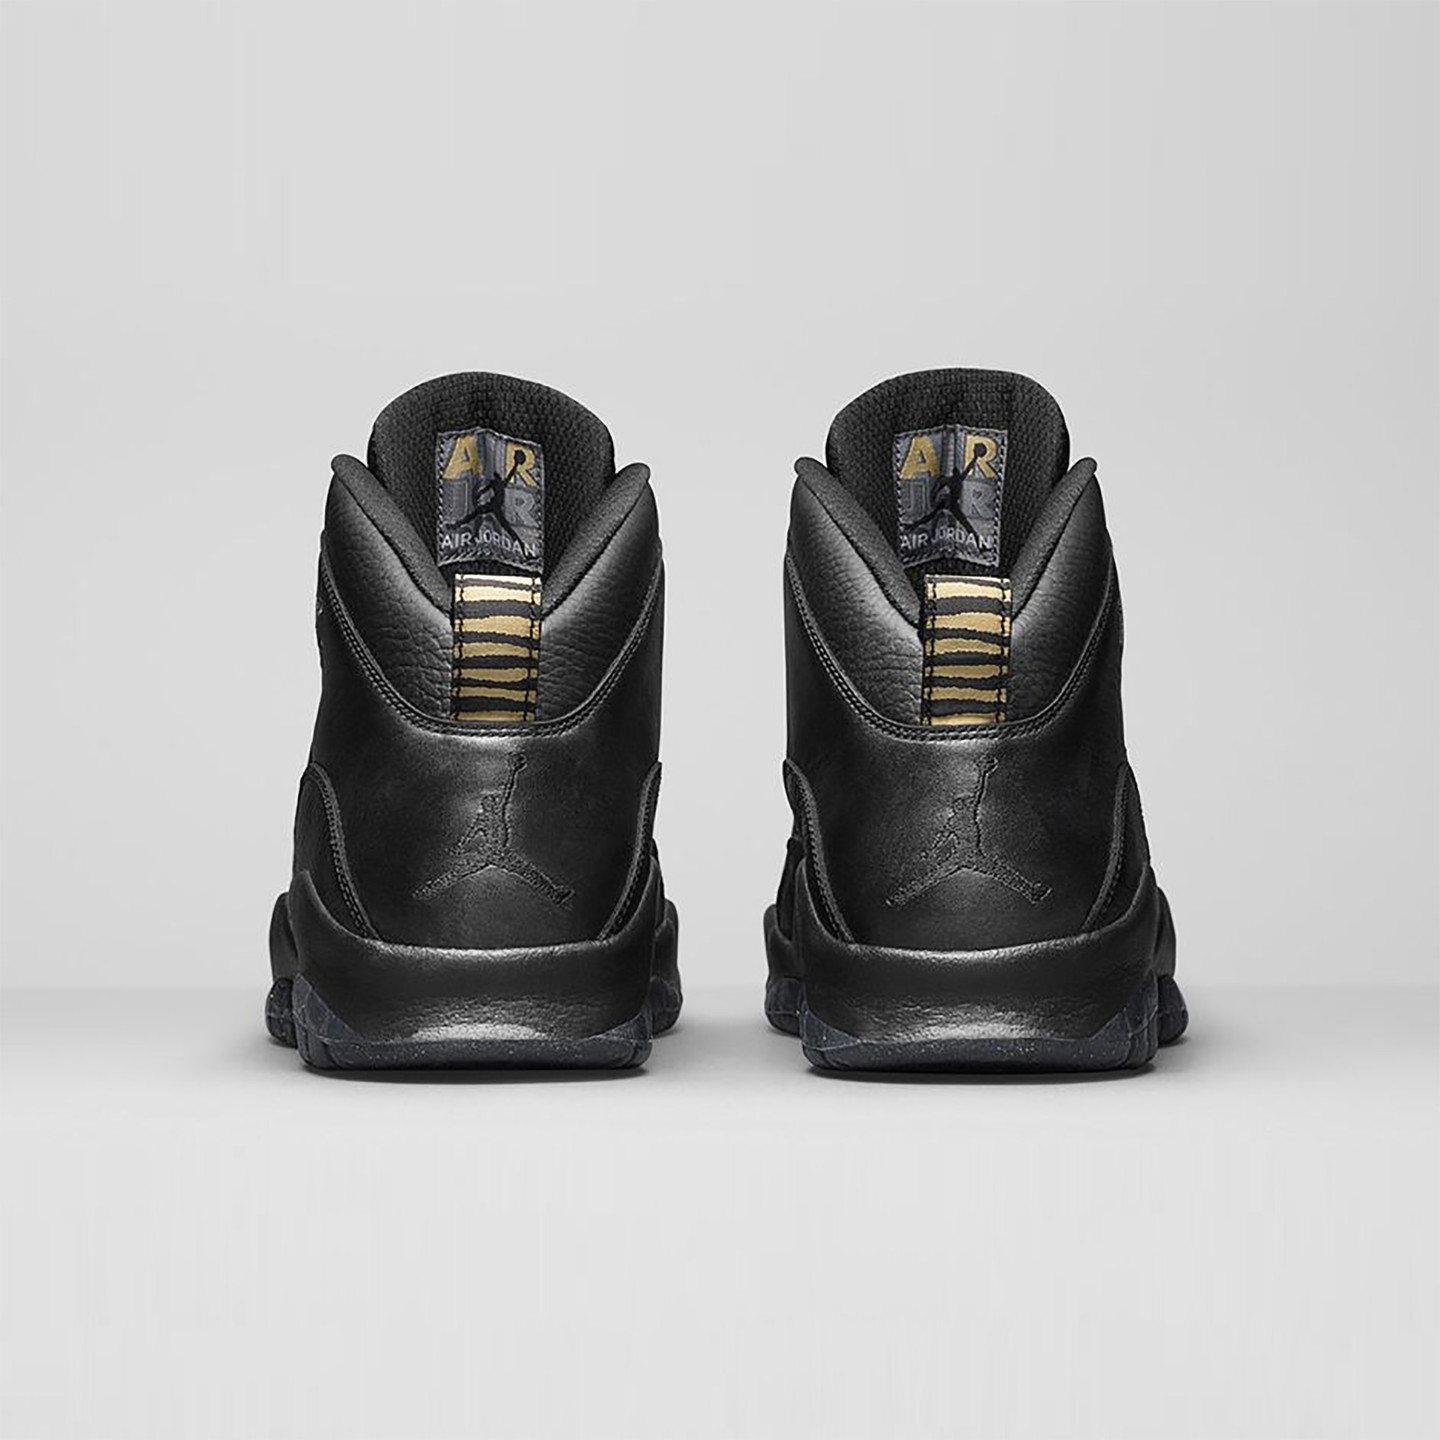 Jordan Air Jordan 10 Retro GS 'NYC' Black / Metallic Gold 310806-012-38.5